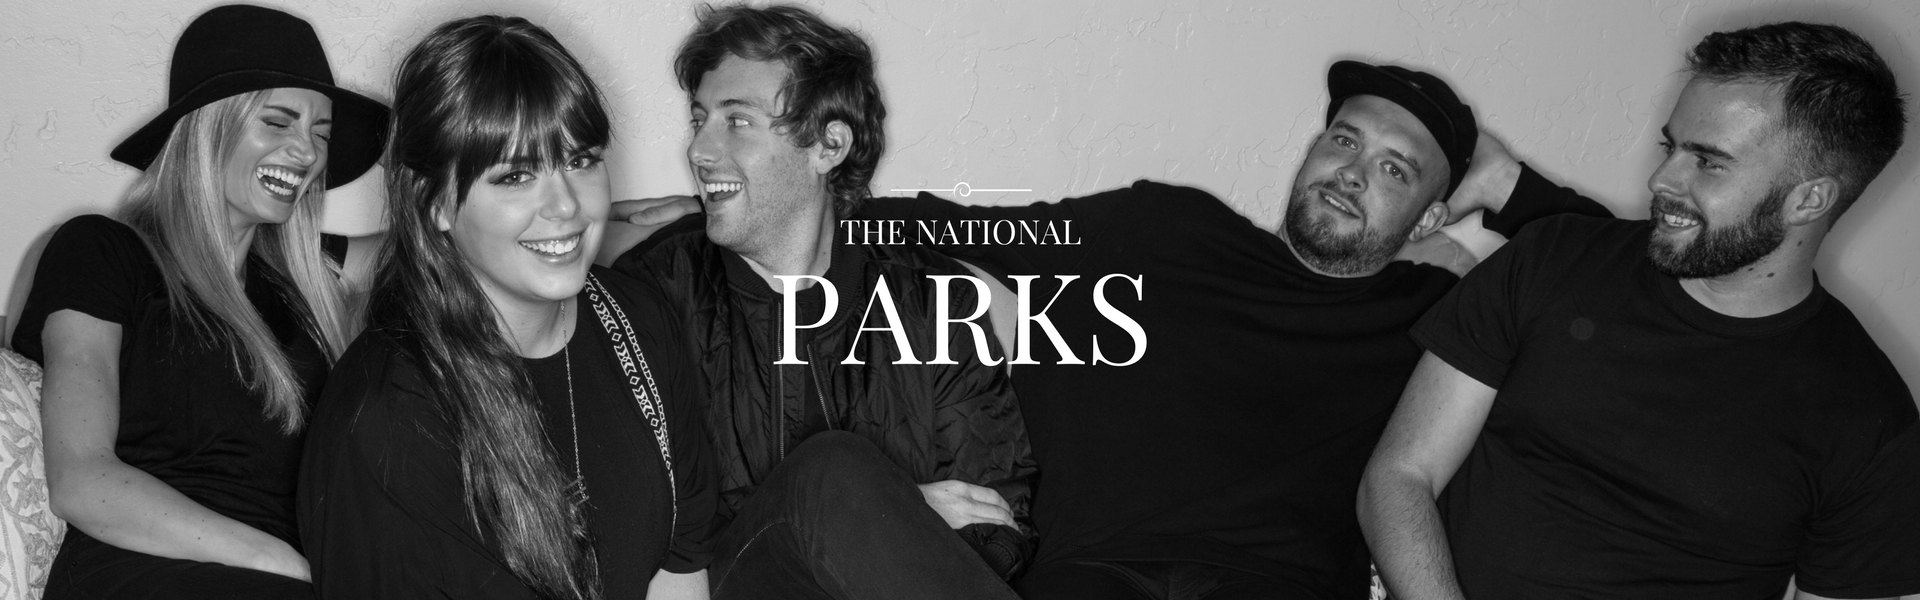 The National Parks Fest at Tanner